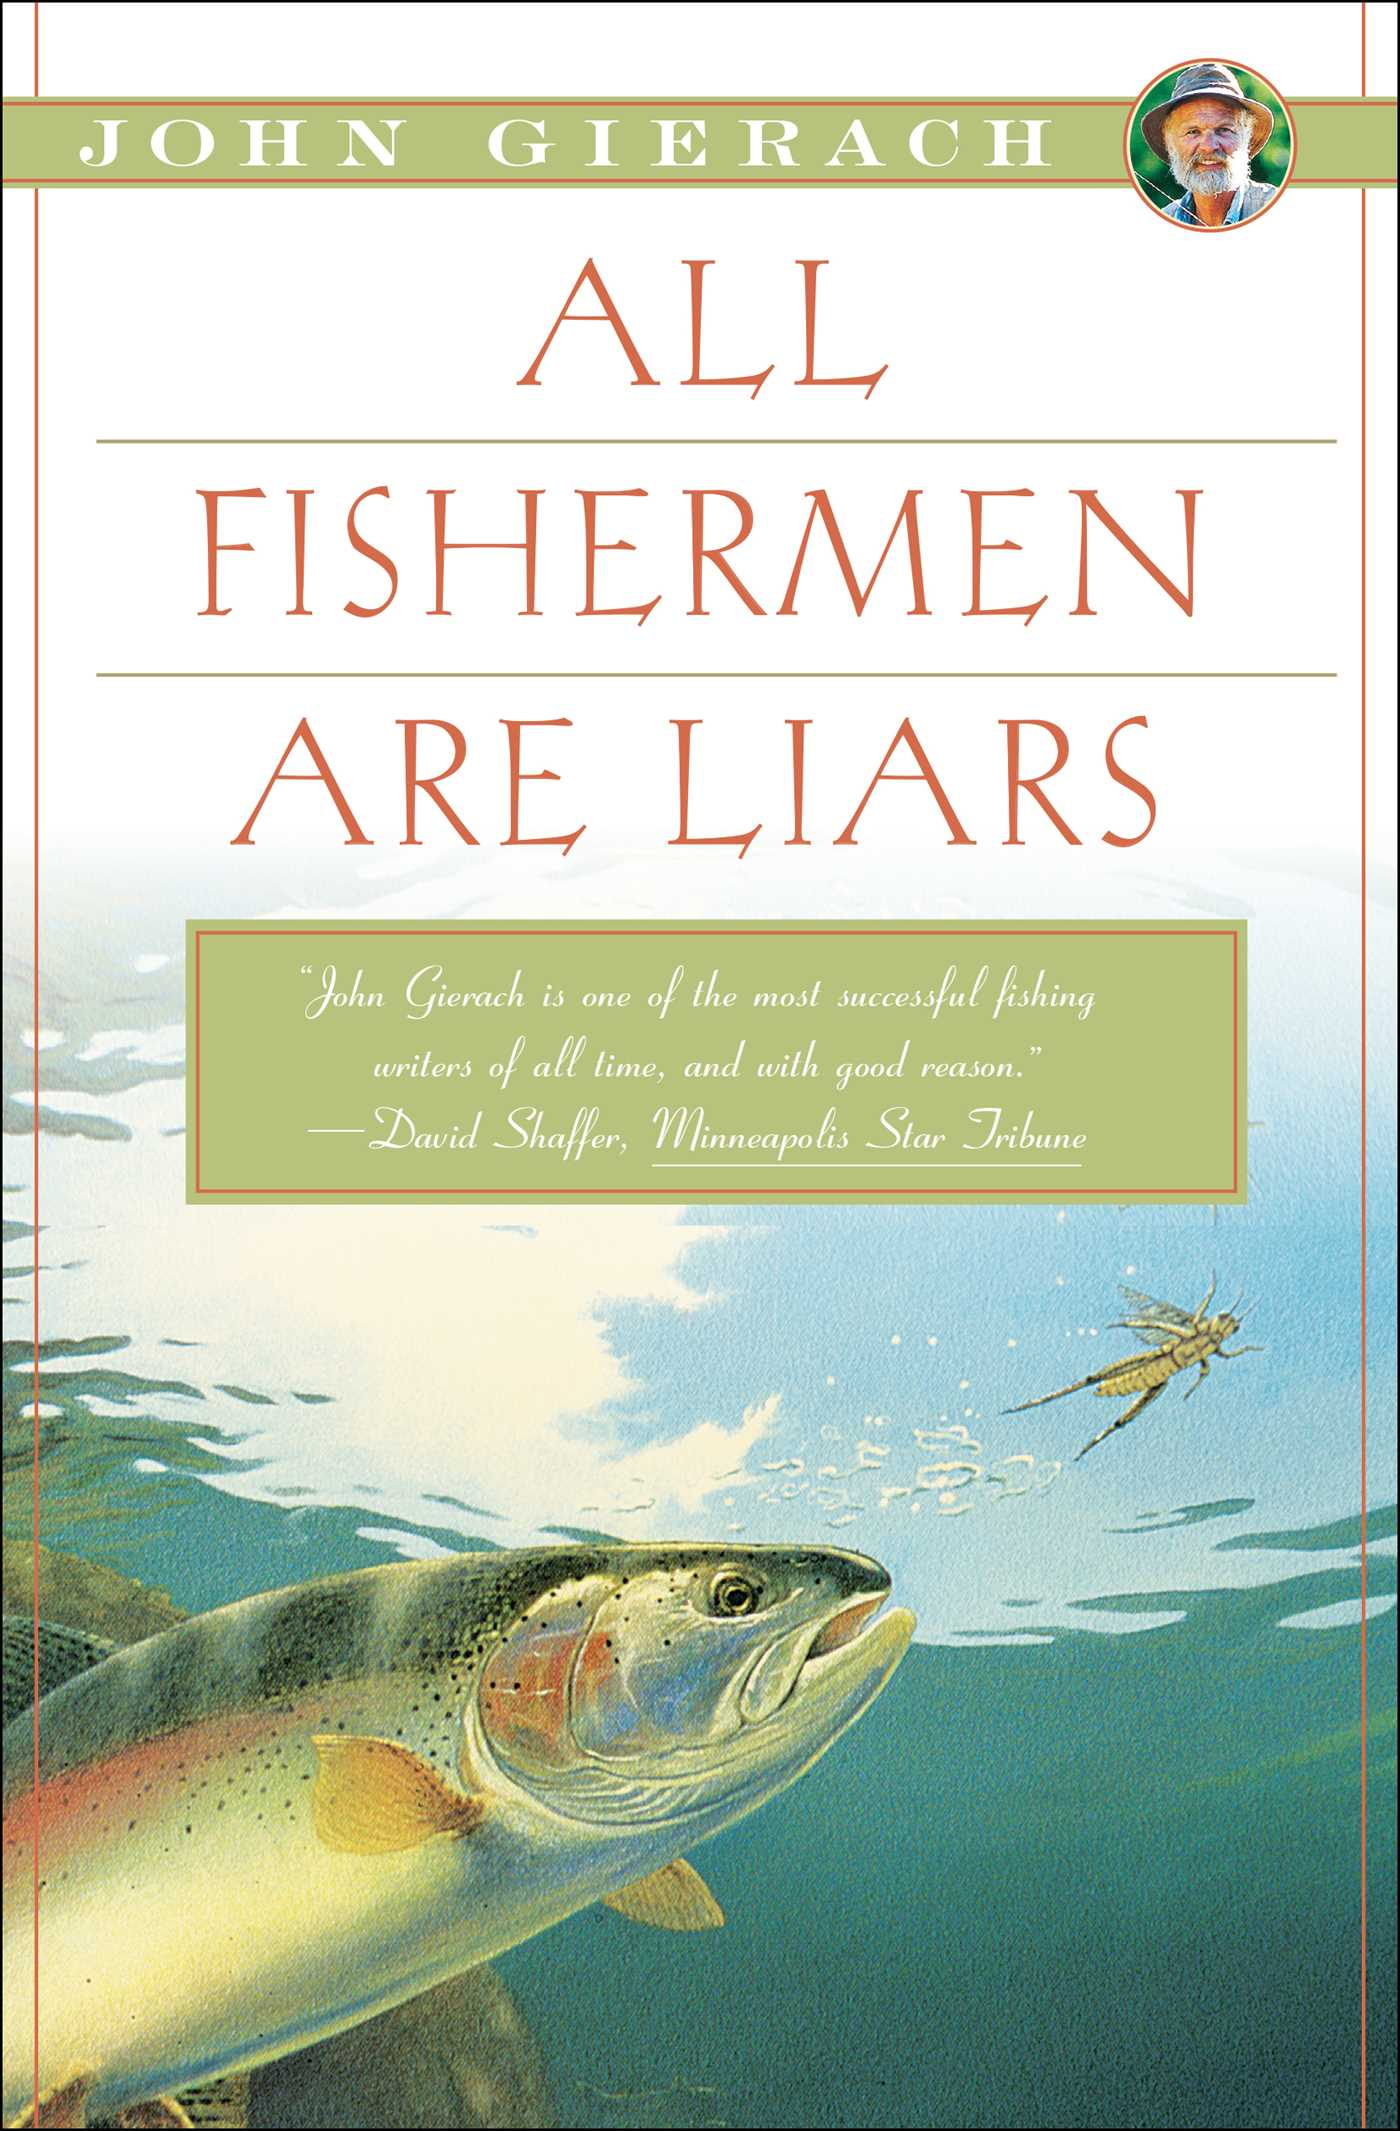 All fishermen are liars 9781451618327 hr